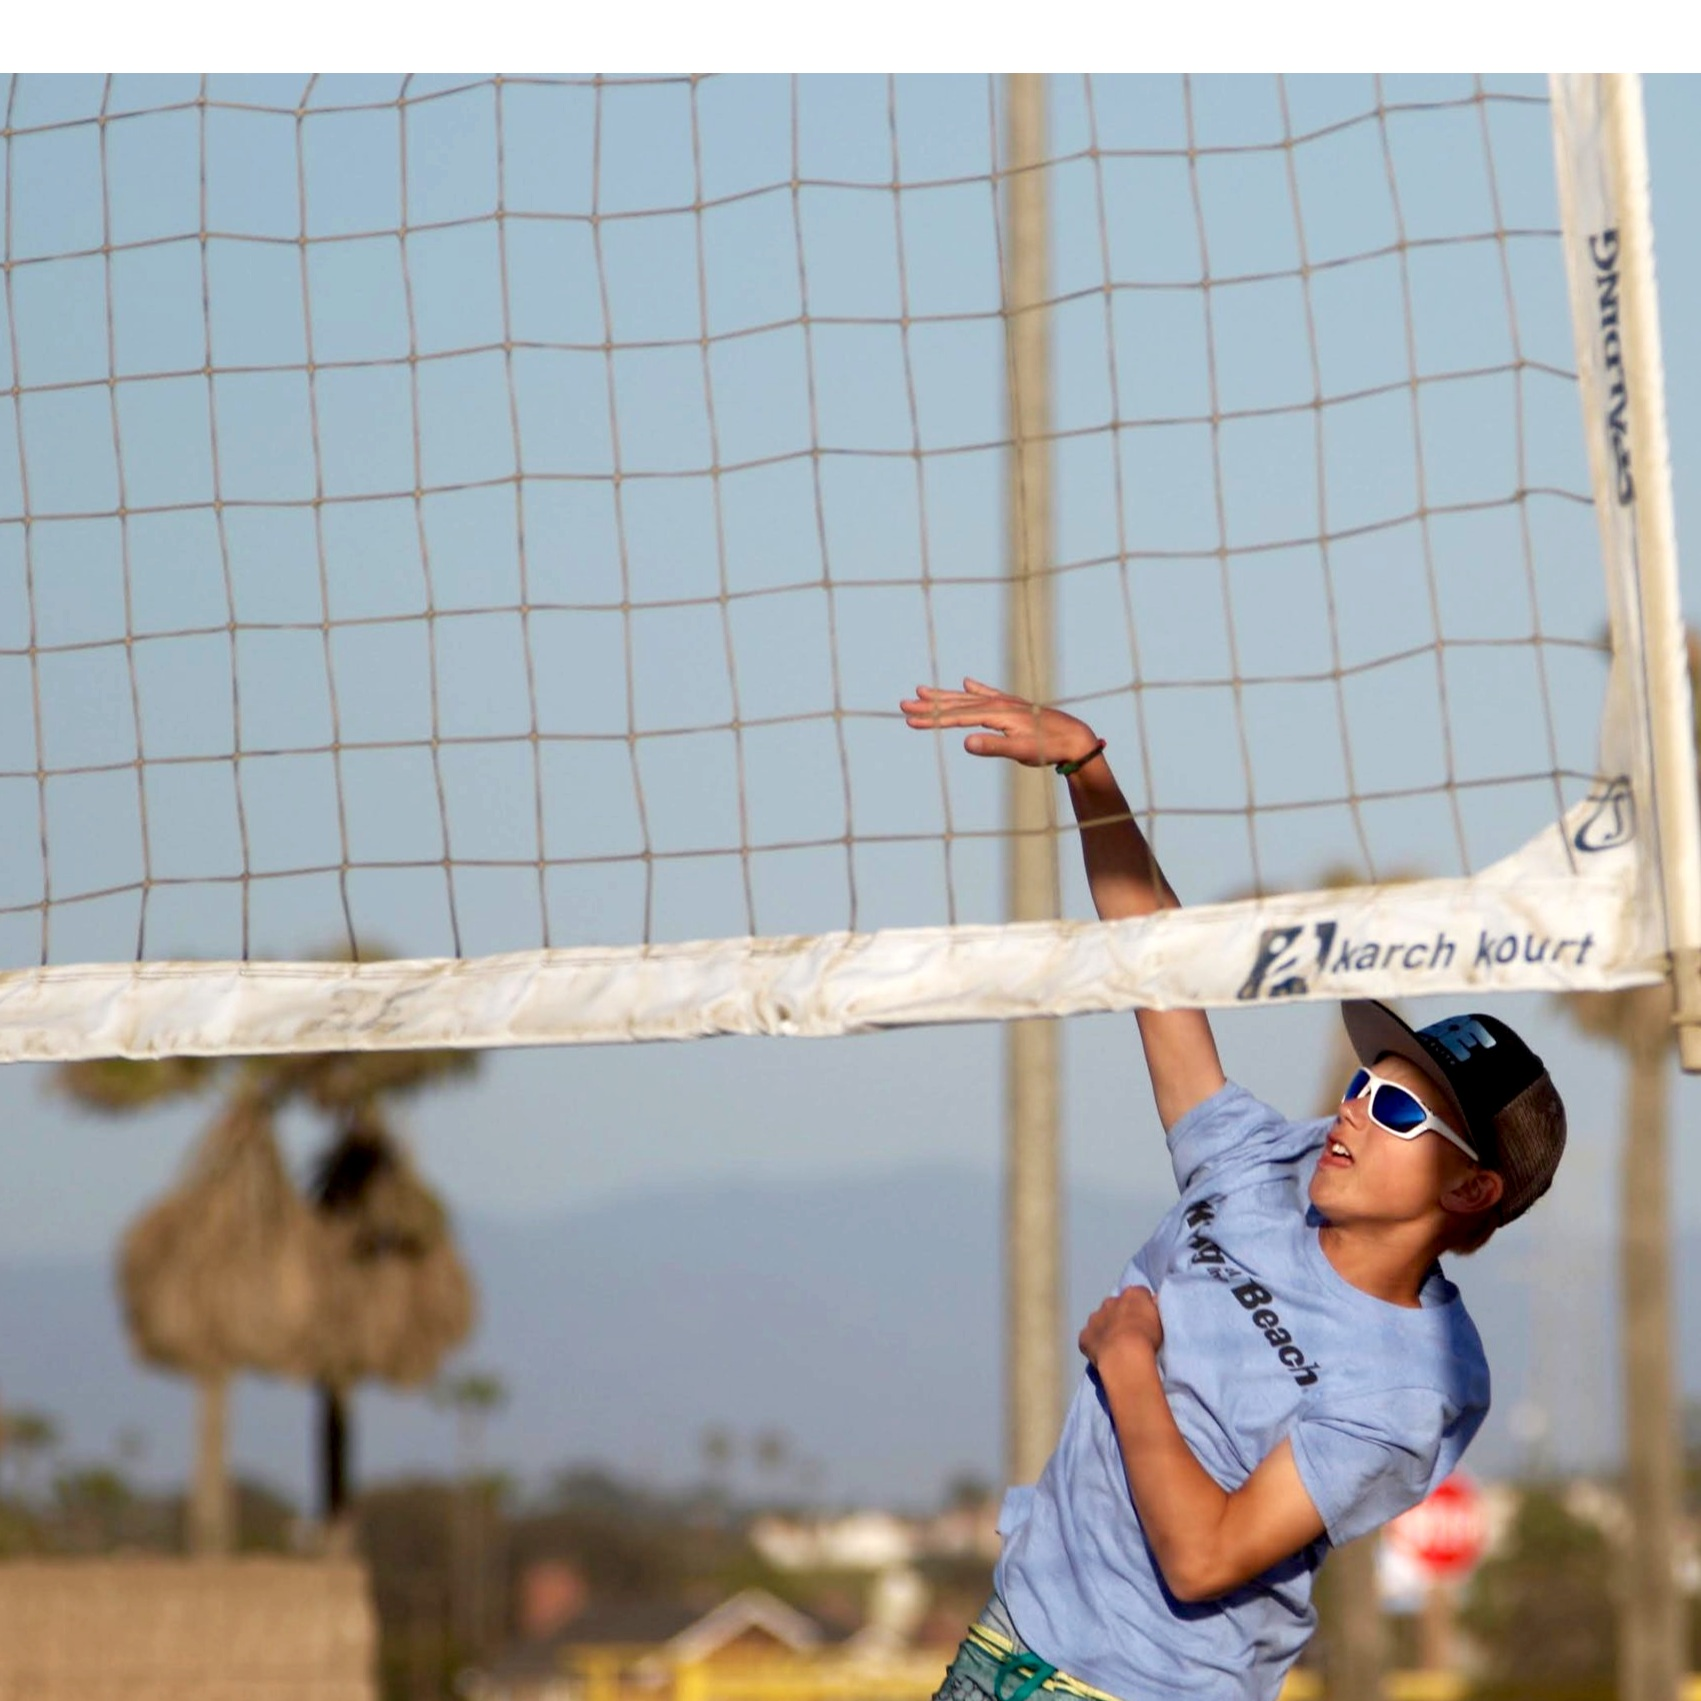 BEACH ELITE SCHOLARSHIP FUND - Beach Elite is a 501c3 non profit organization. Our mission is to provide all youth athletes a chance to play and compete in both beach and indoor volleyball! We truly appreciate your support!